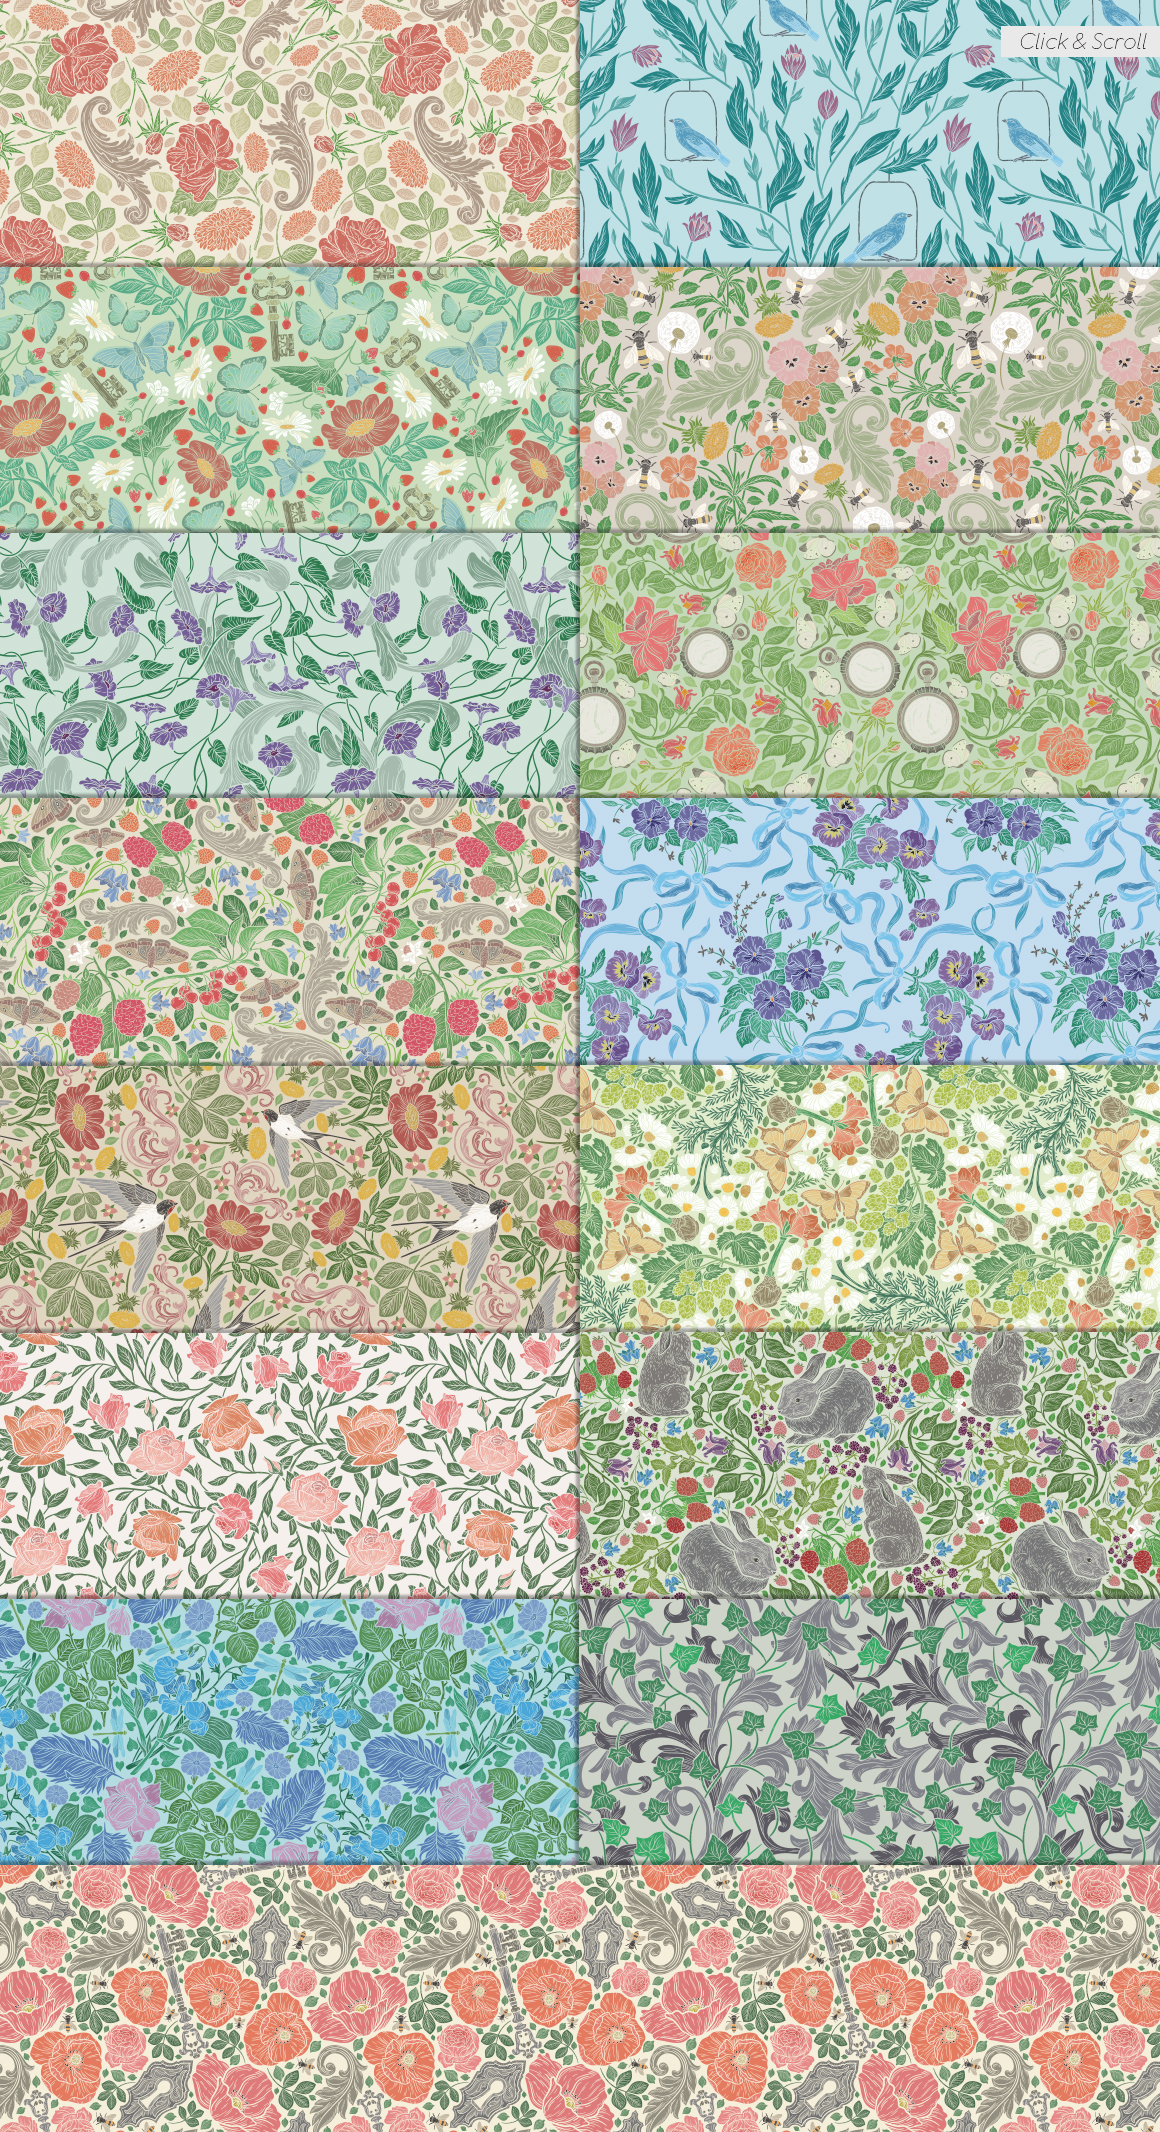 English Backyard patterns example image 4